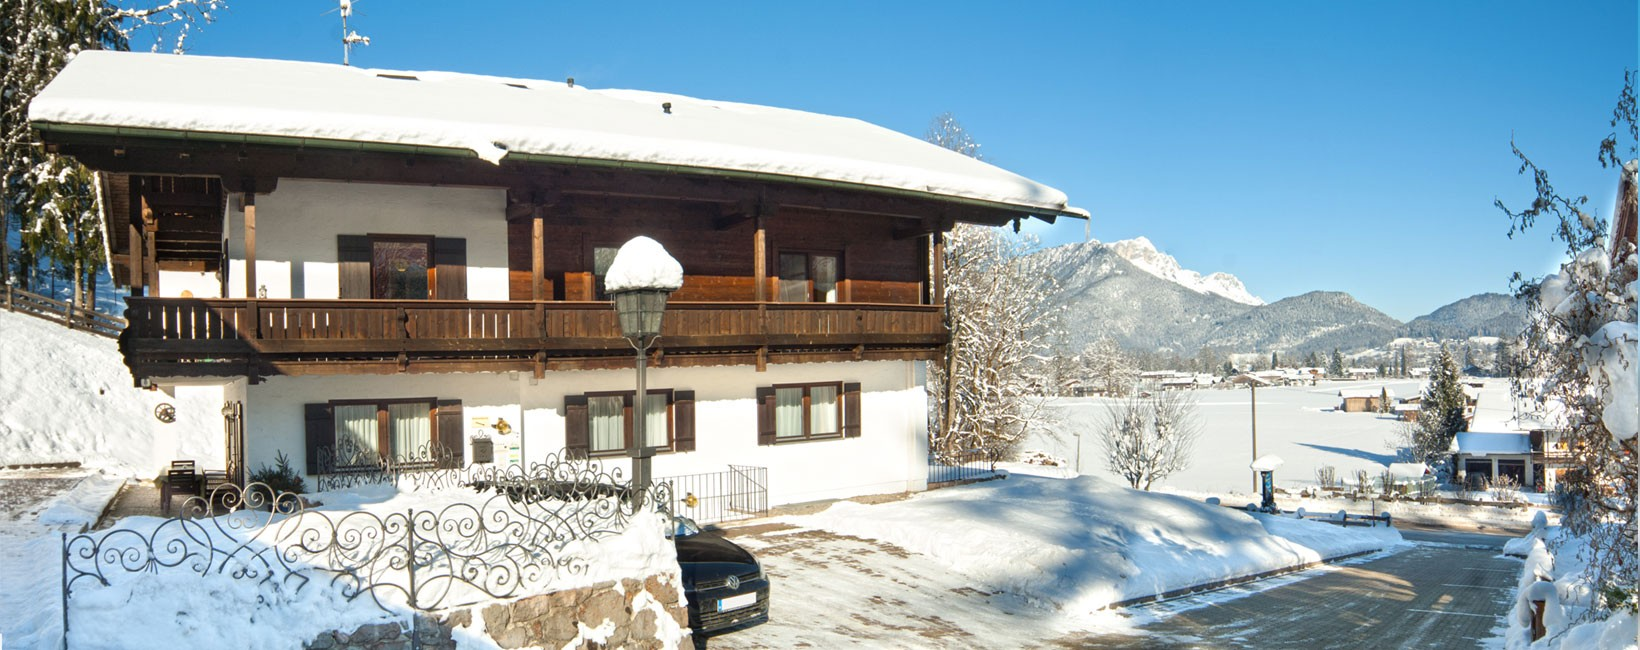 Pension Berganemone im Winter